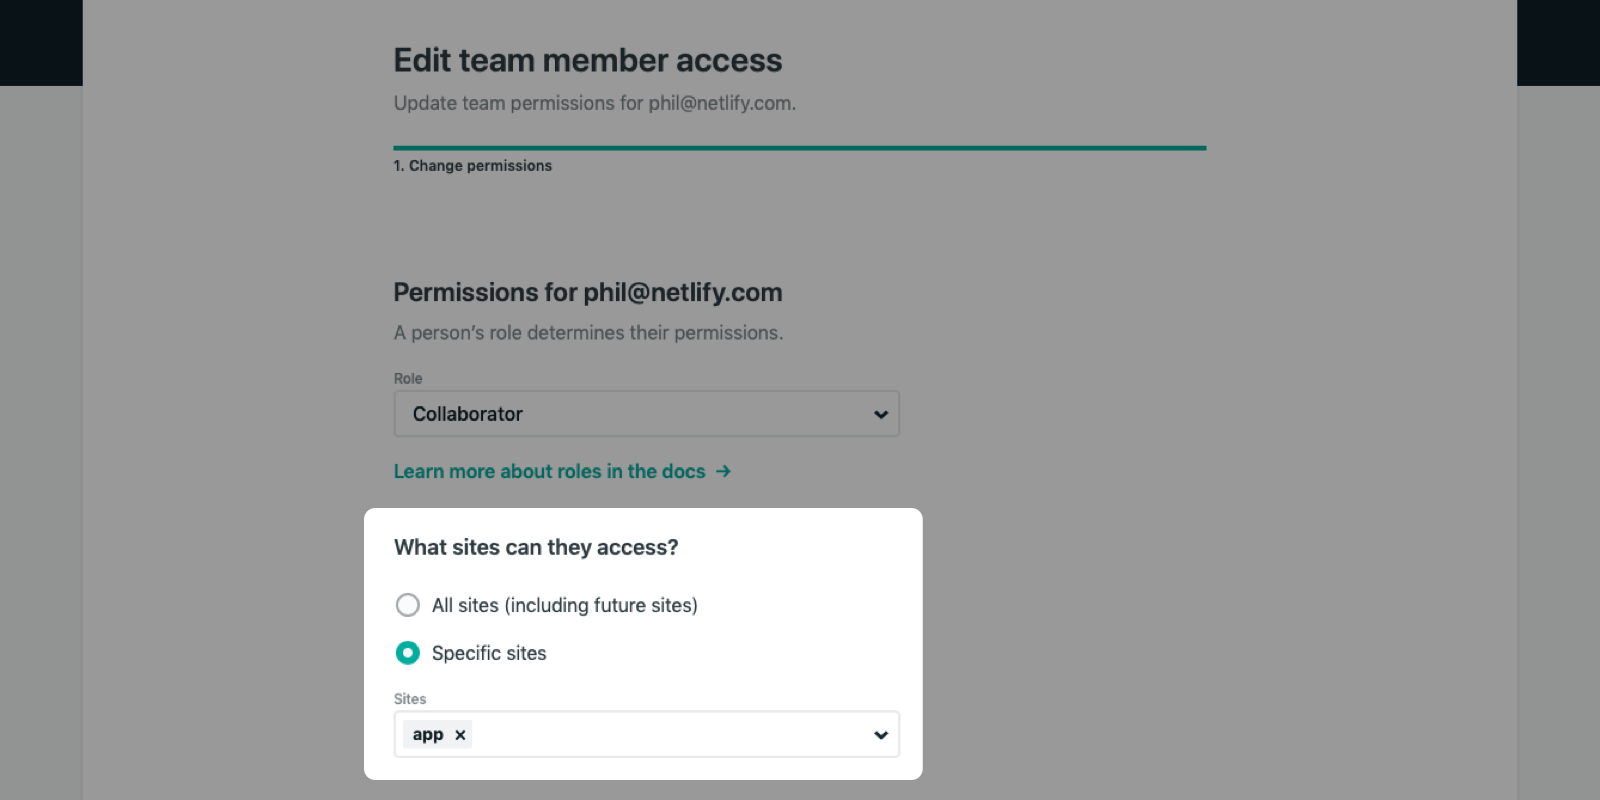 Owners can select the specific sites that a team member can access